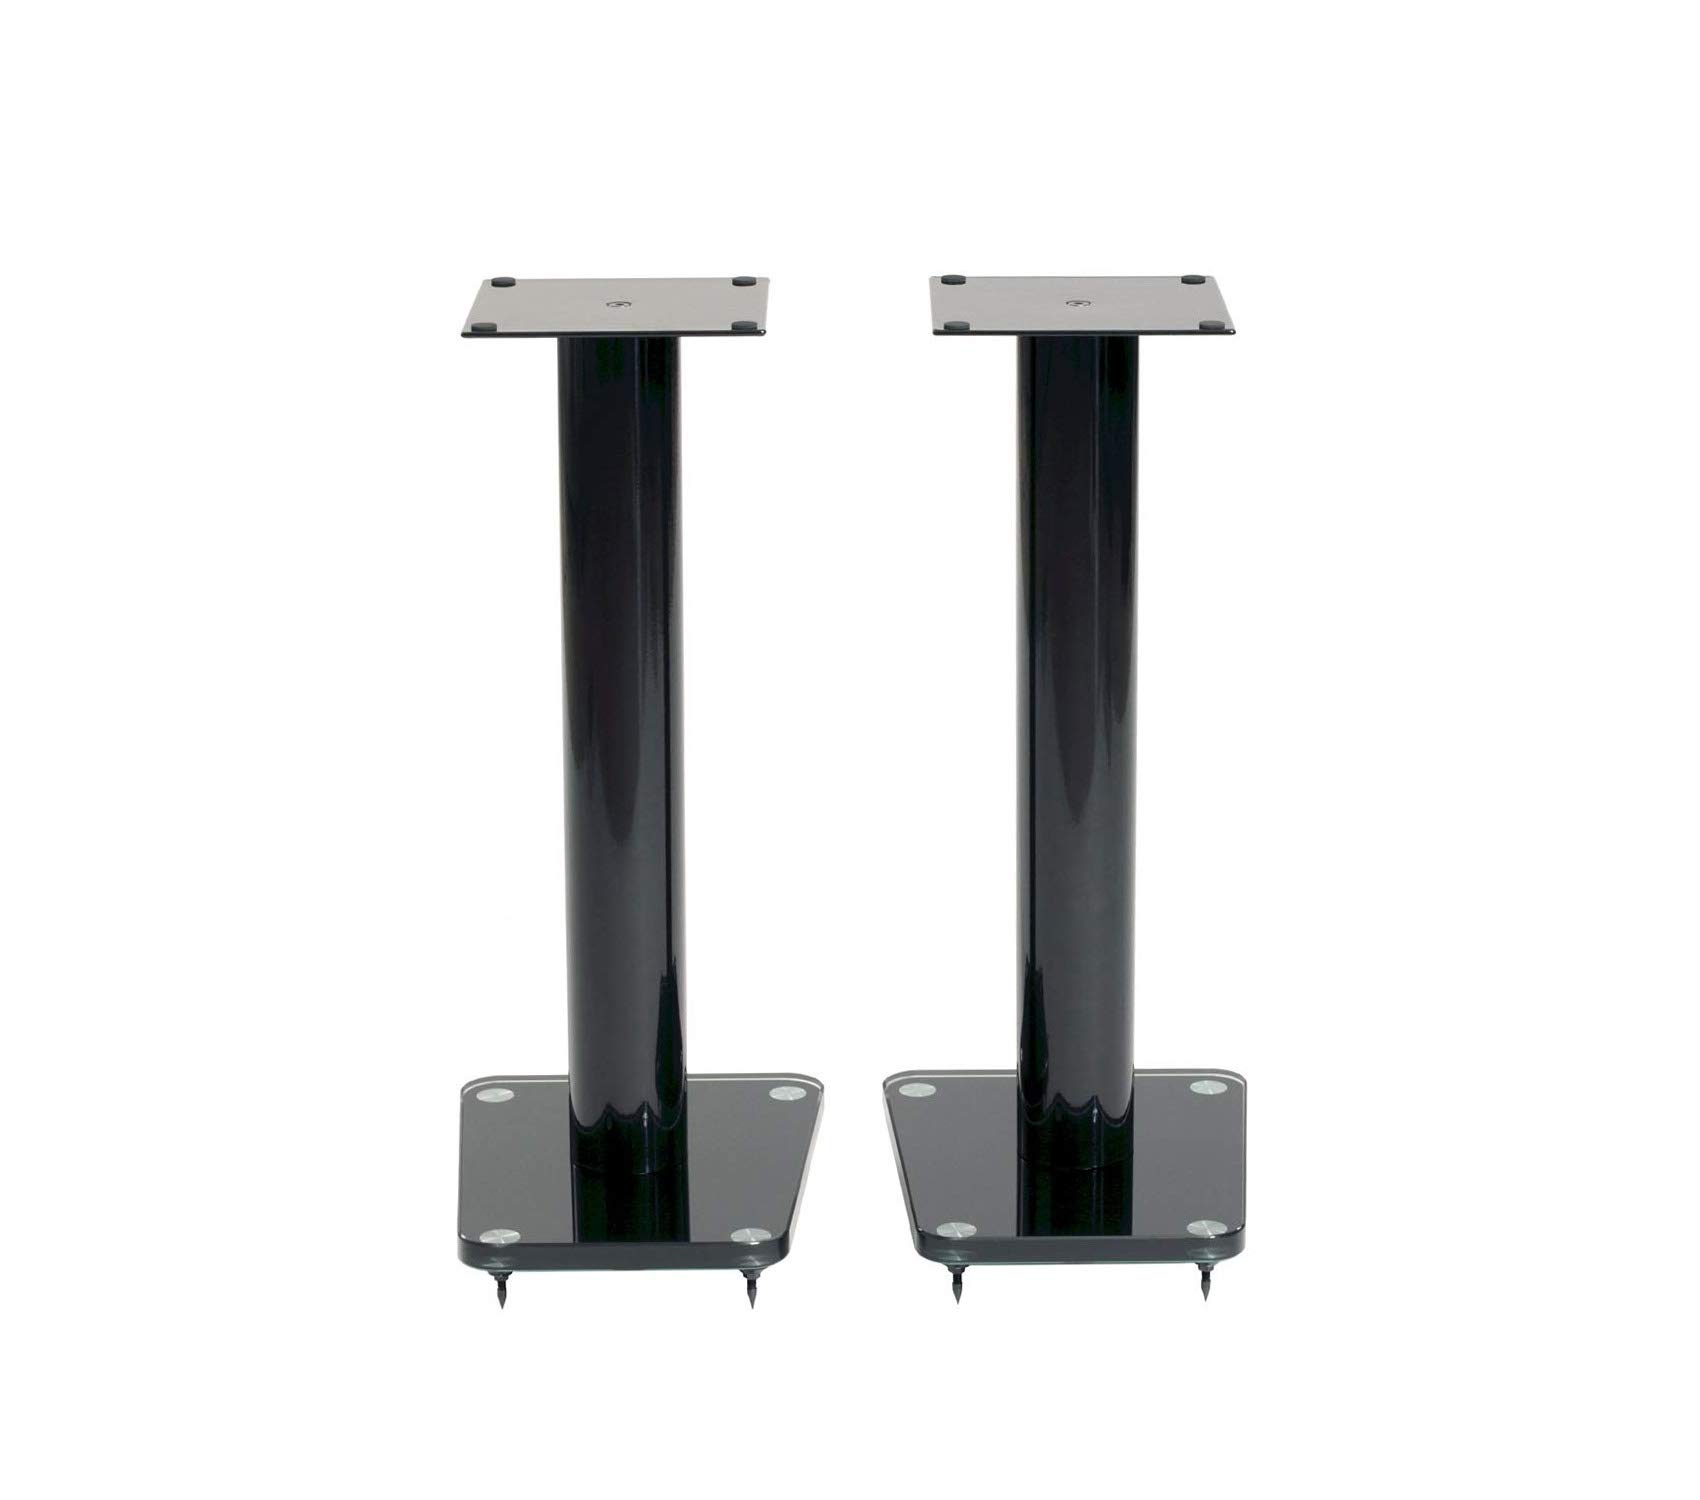 Wood & Style Speaker Stands 24'' Black Decor Comfy Living Furniture Deluxe Premium Collection by Wood & Style